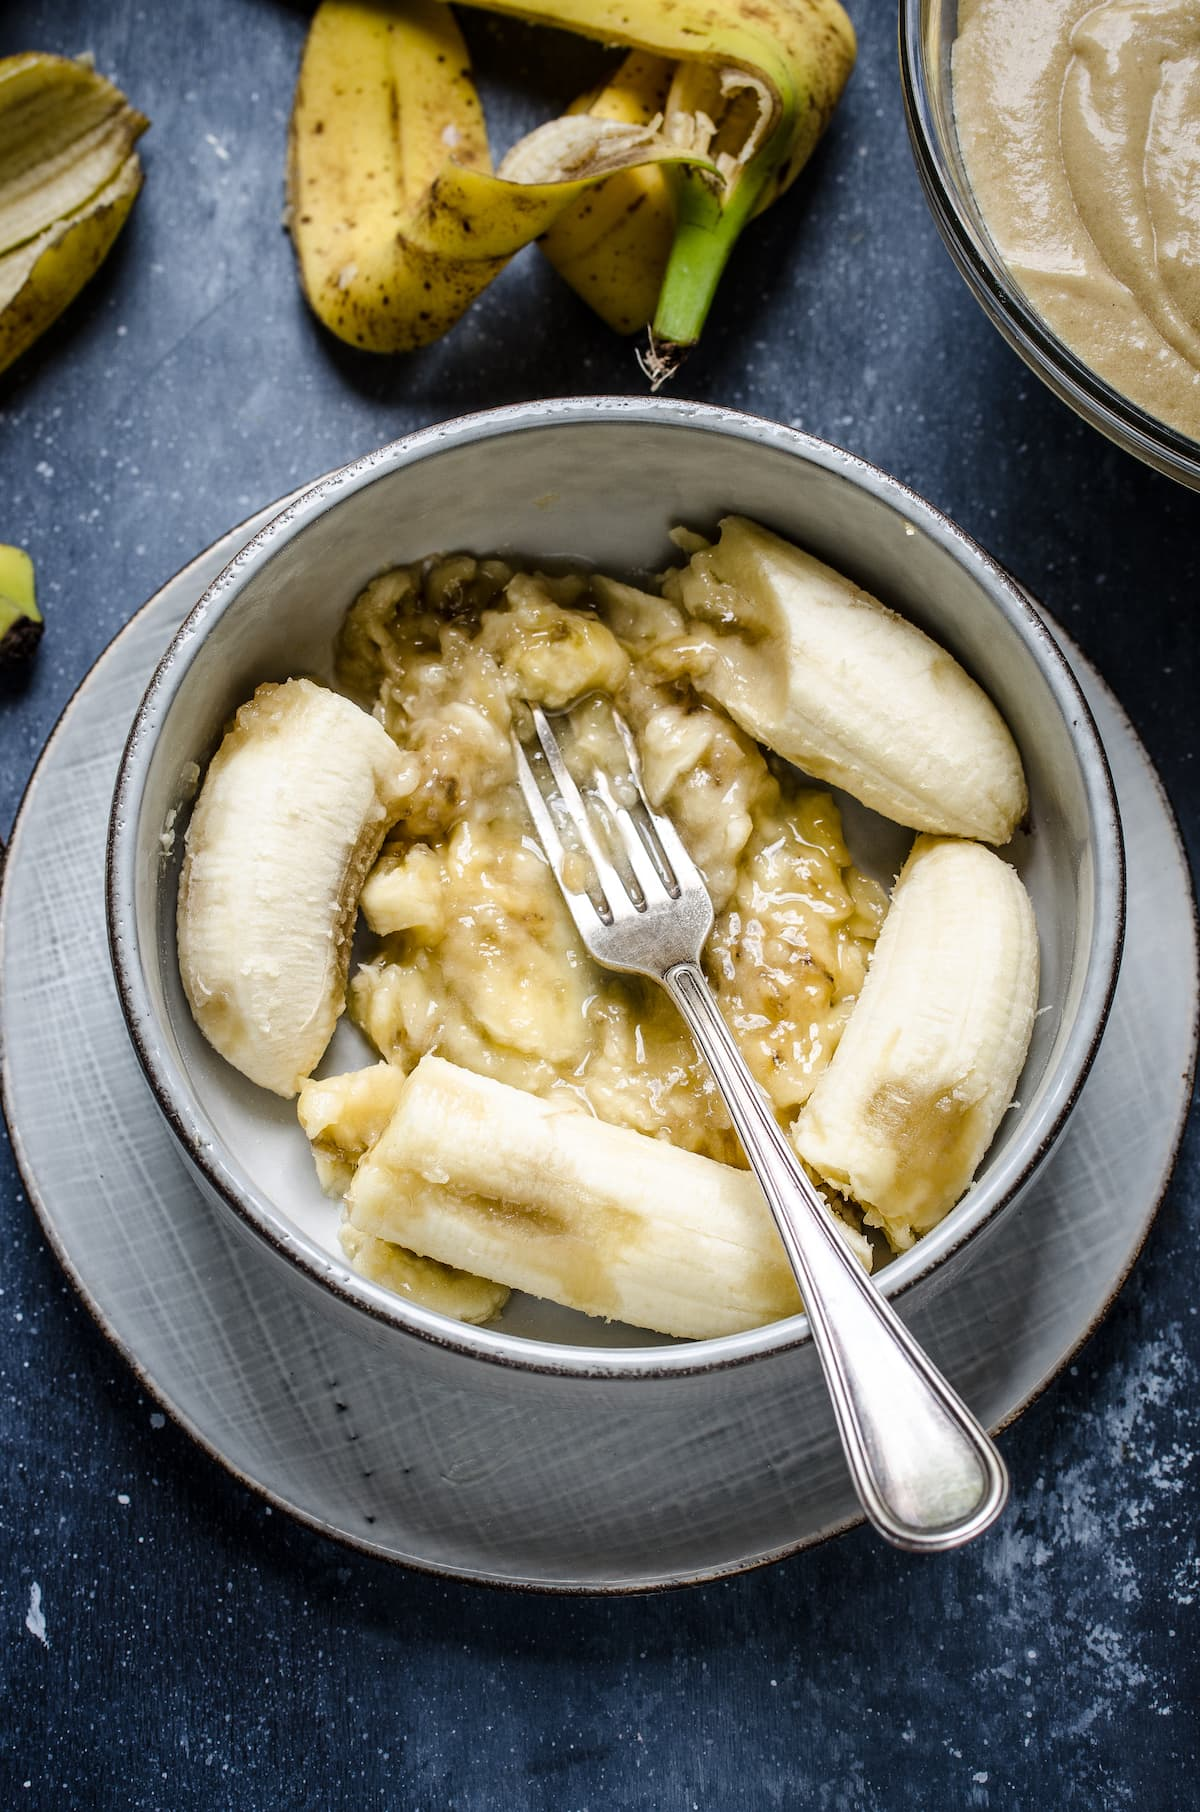 Mashing bananas with a fork in a bowl